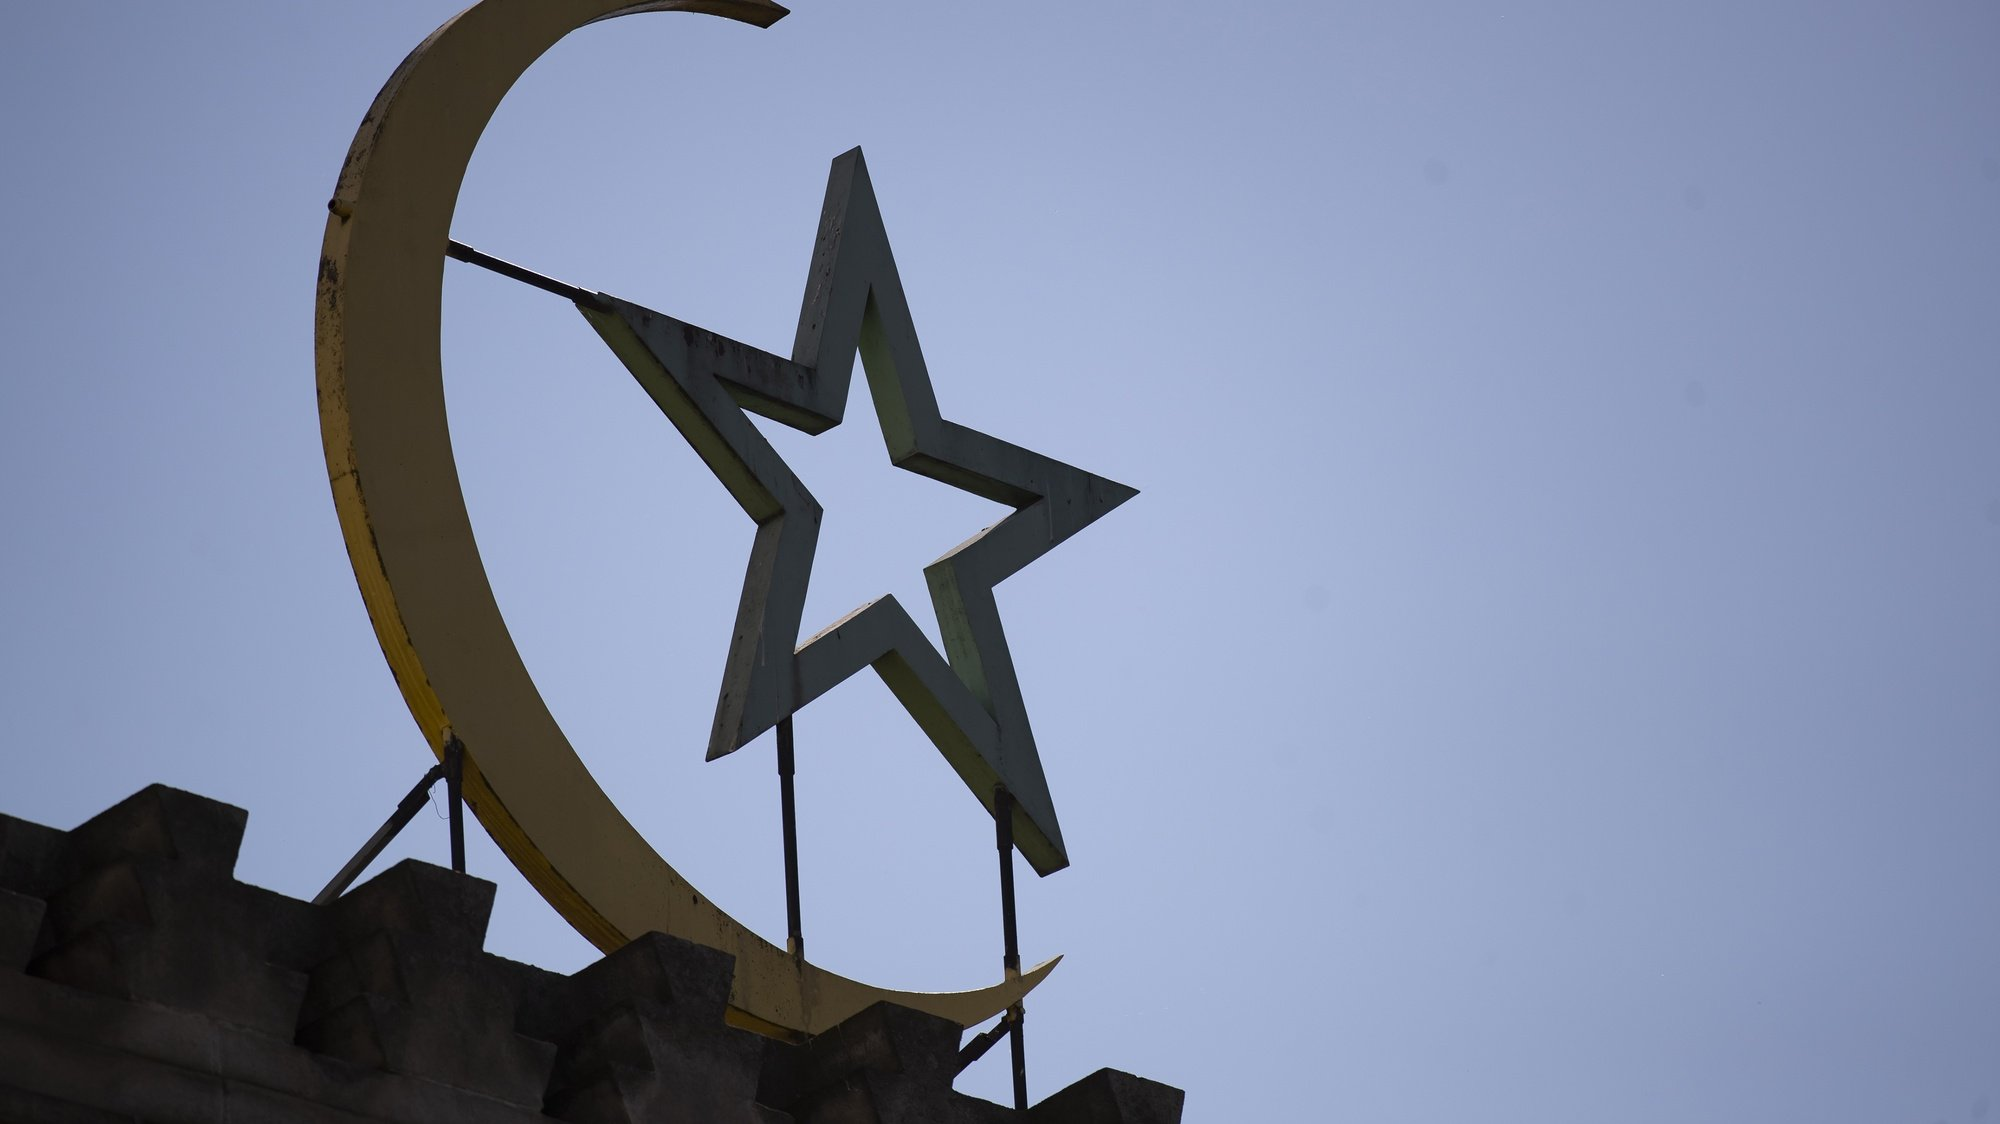 epa08377091 The star and crescent, symbol of Islam, is displayed on the entrance of Paris' Great Mosque a few days before the expected start of Ramadan, in Paris, France, 22 April 2020. Muslims around the world celebrate the holy month of Ramadan by praying during the night time and abstaining from eating, drinking, and sexual acts daily between sunrise and sunset. Ramadan is the ninth month in the Islamic calendar and it is believed that the Koran's first verse was revealed during its last 10 nights. Gatherings and group prayers will not be held at the mosque, as part of lockdown and confinement measures implemented in an attempt to stop the widespread of the SARS-CoV-2 coronavirus causing the Covid-19 disease.  EPA/IAN LANGSDON